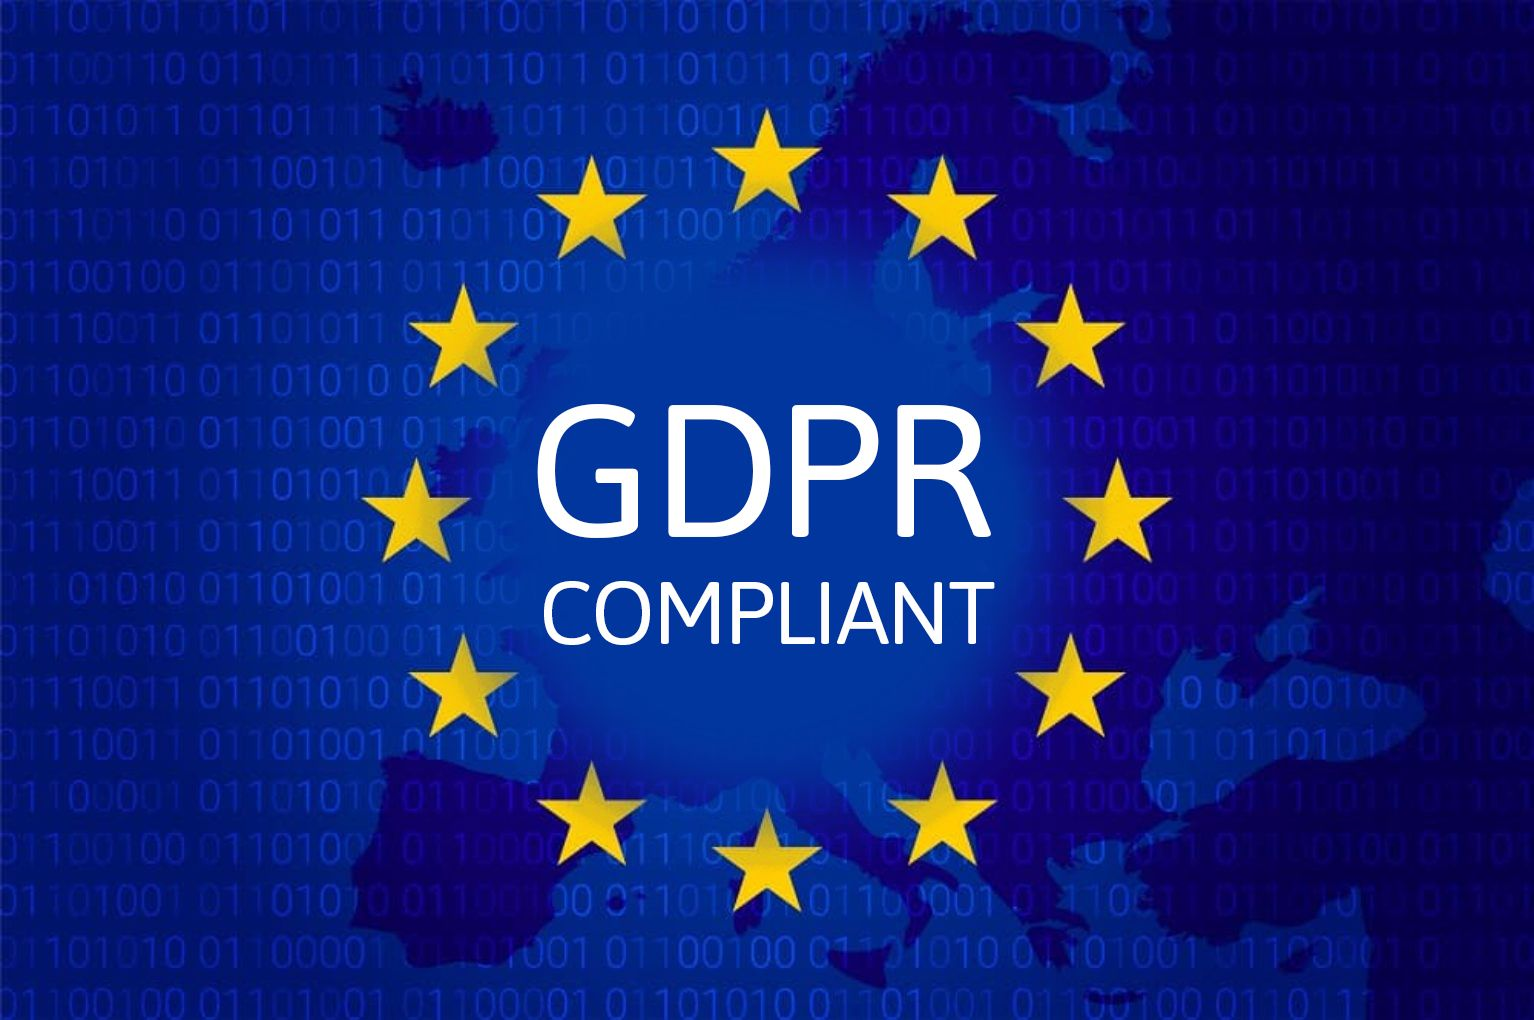 European GDPR Compliance at STid Group